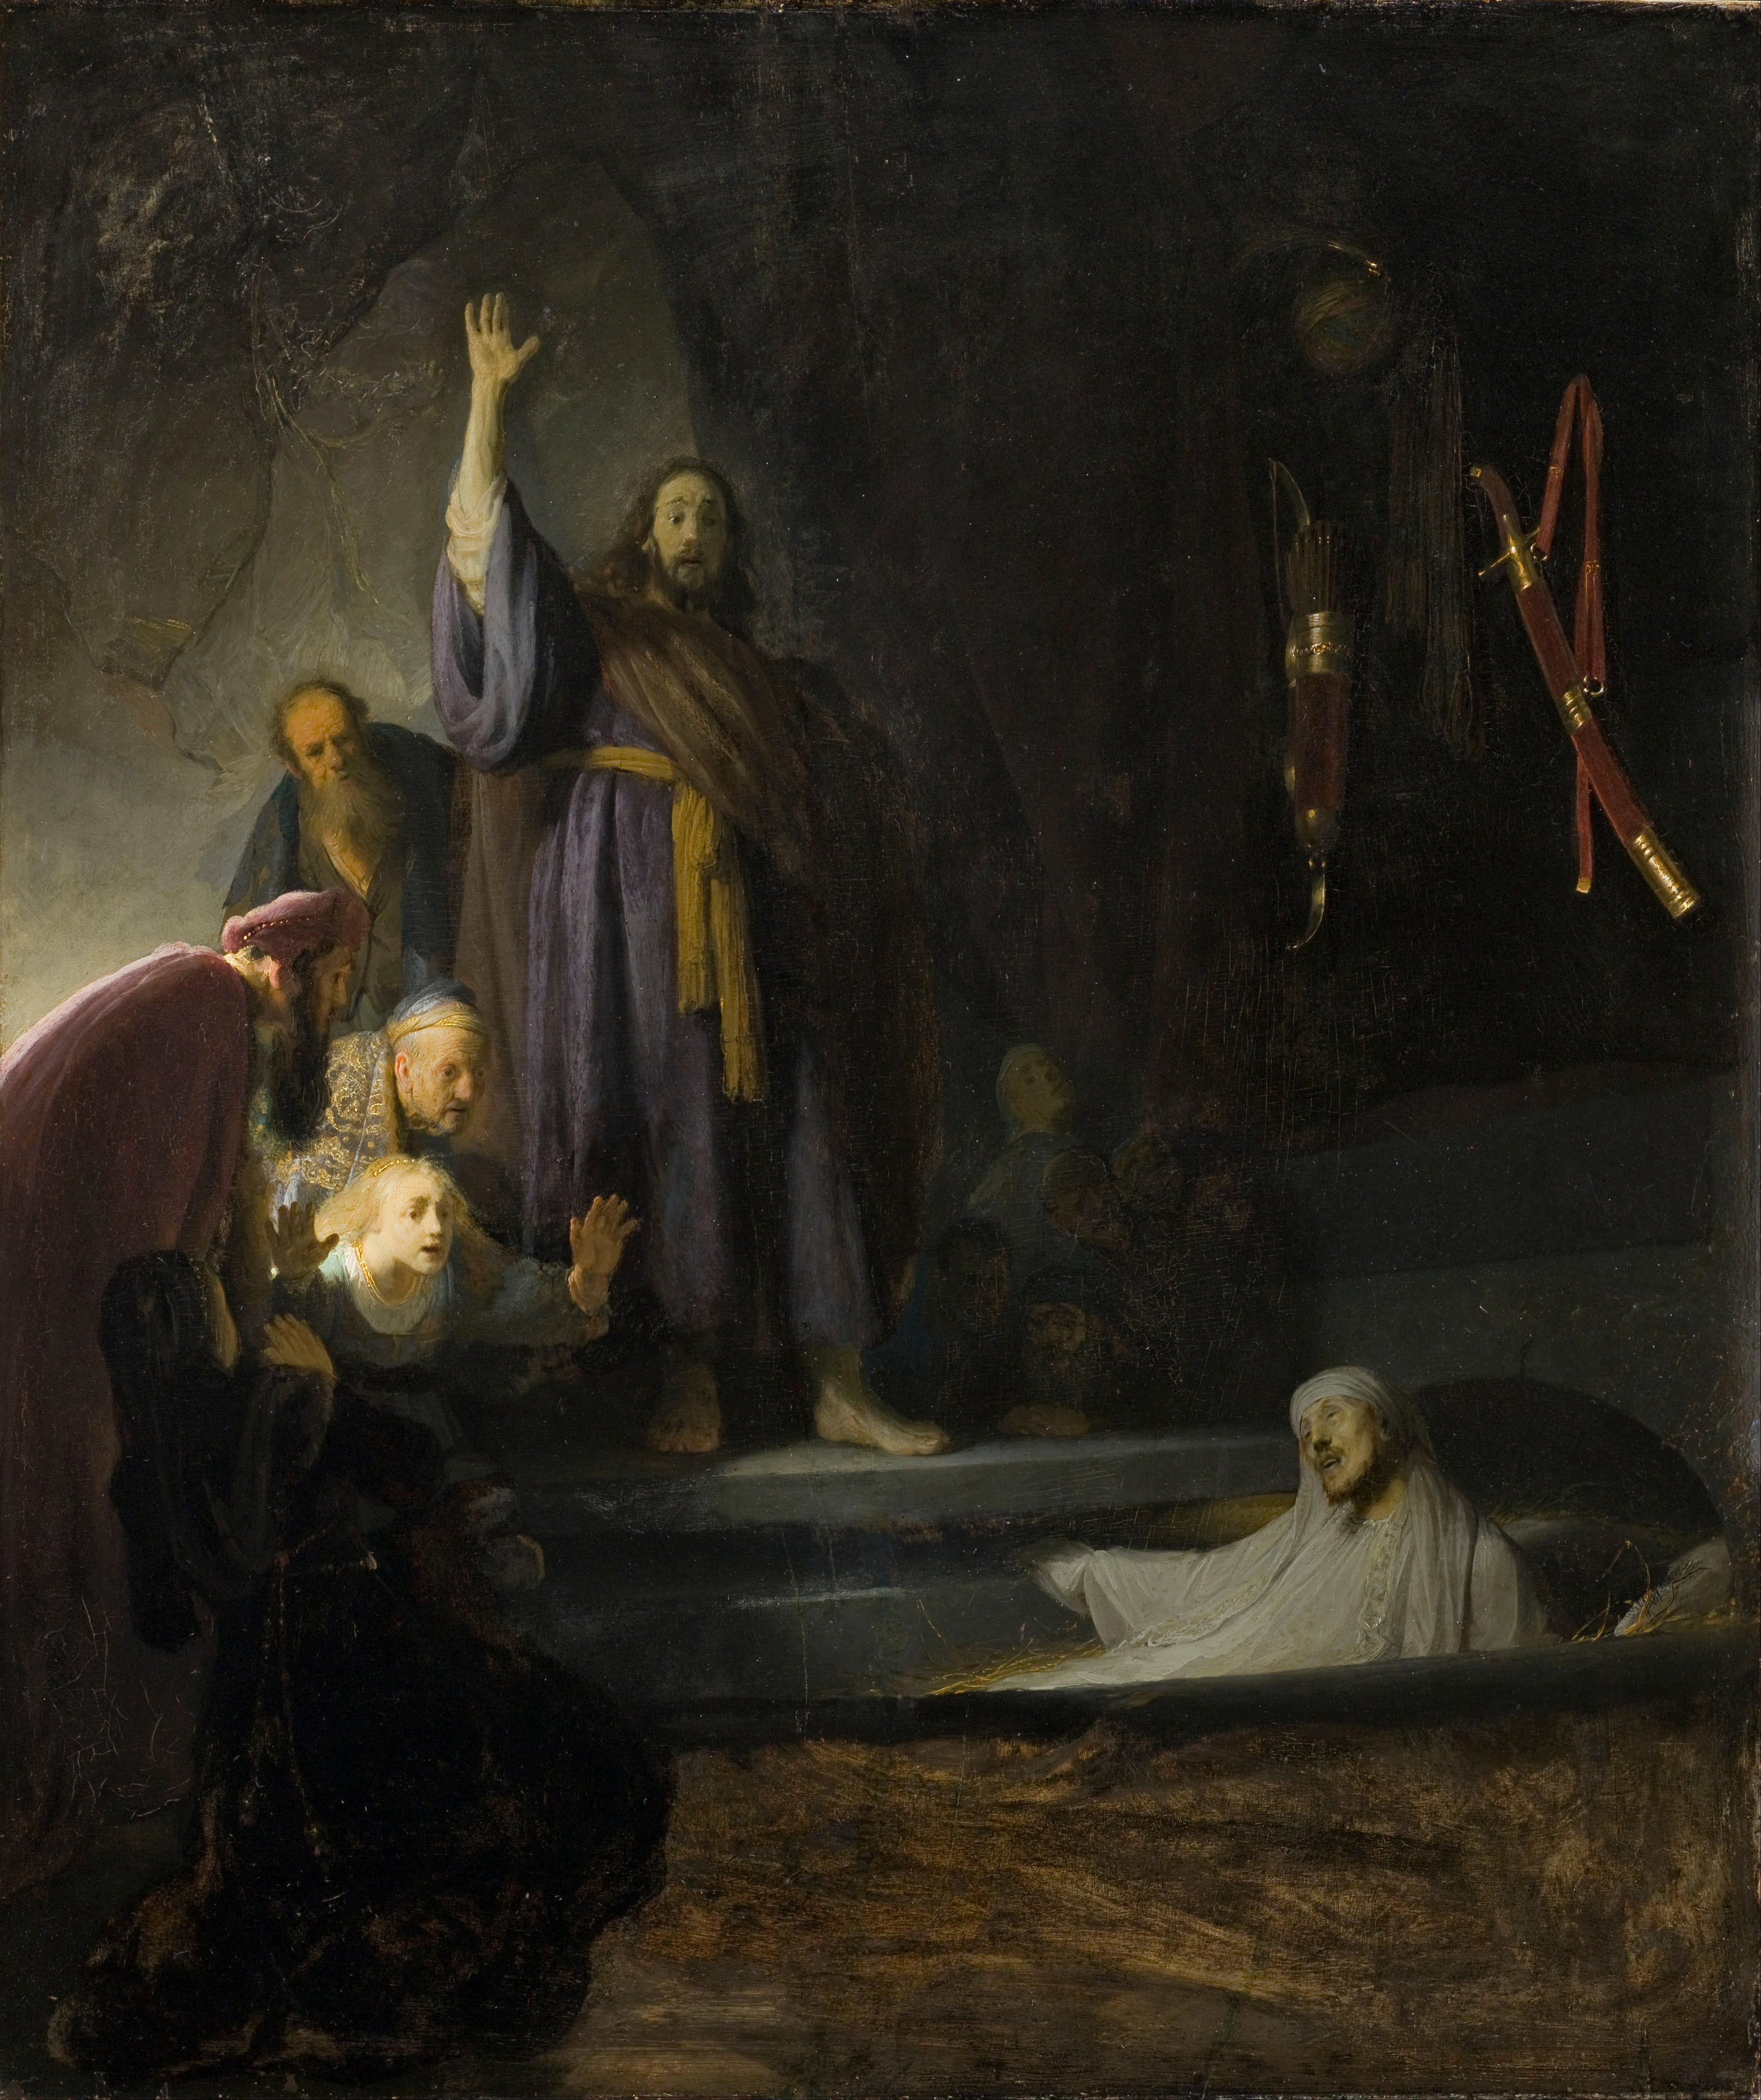 http://upload.wikimedia.org/wikipedia/commons/a/a3/Rembrandt_Harmensz._van_Rijn_-_The_Raising_of_Lazarus_-_Google_Art_Project.jpg